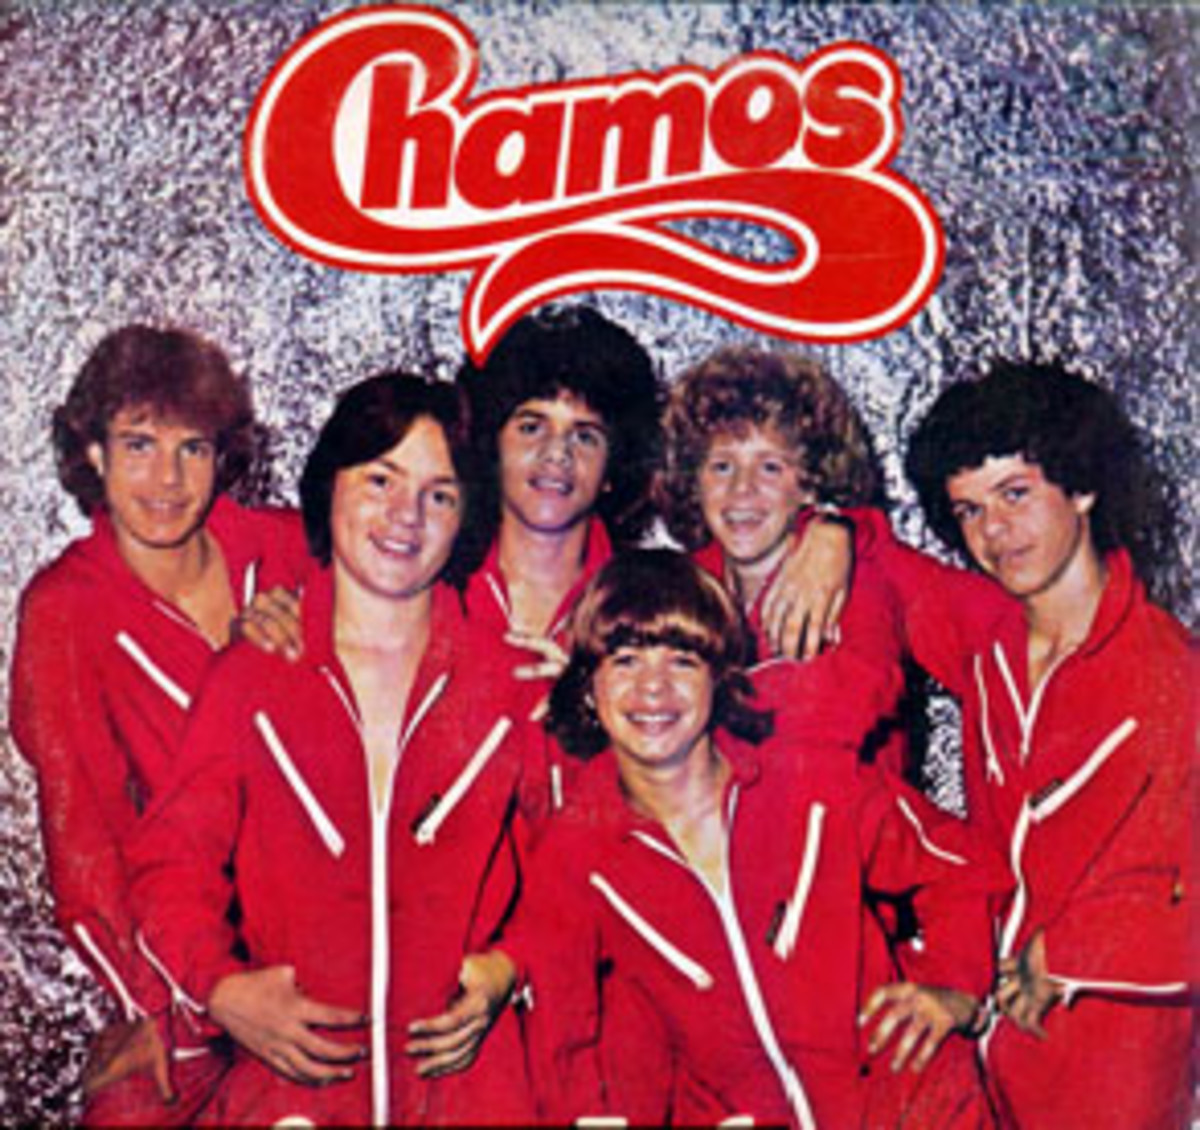 """Los Chamos second studio album released in 1982. It contains the hit song """"Canta Chamo"""" (Cover of Crazy Song)."""